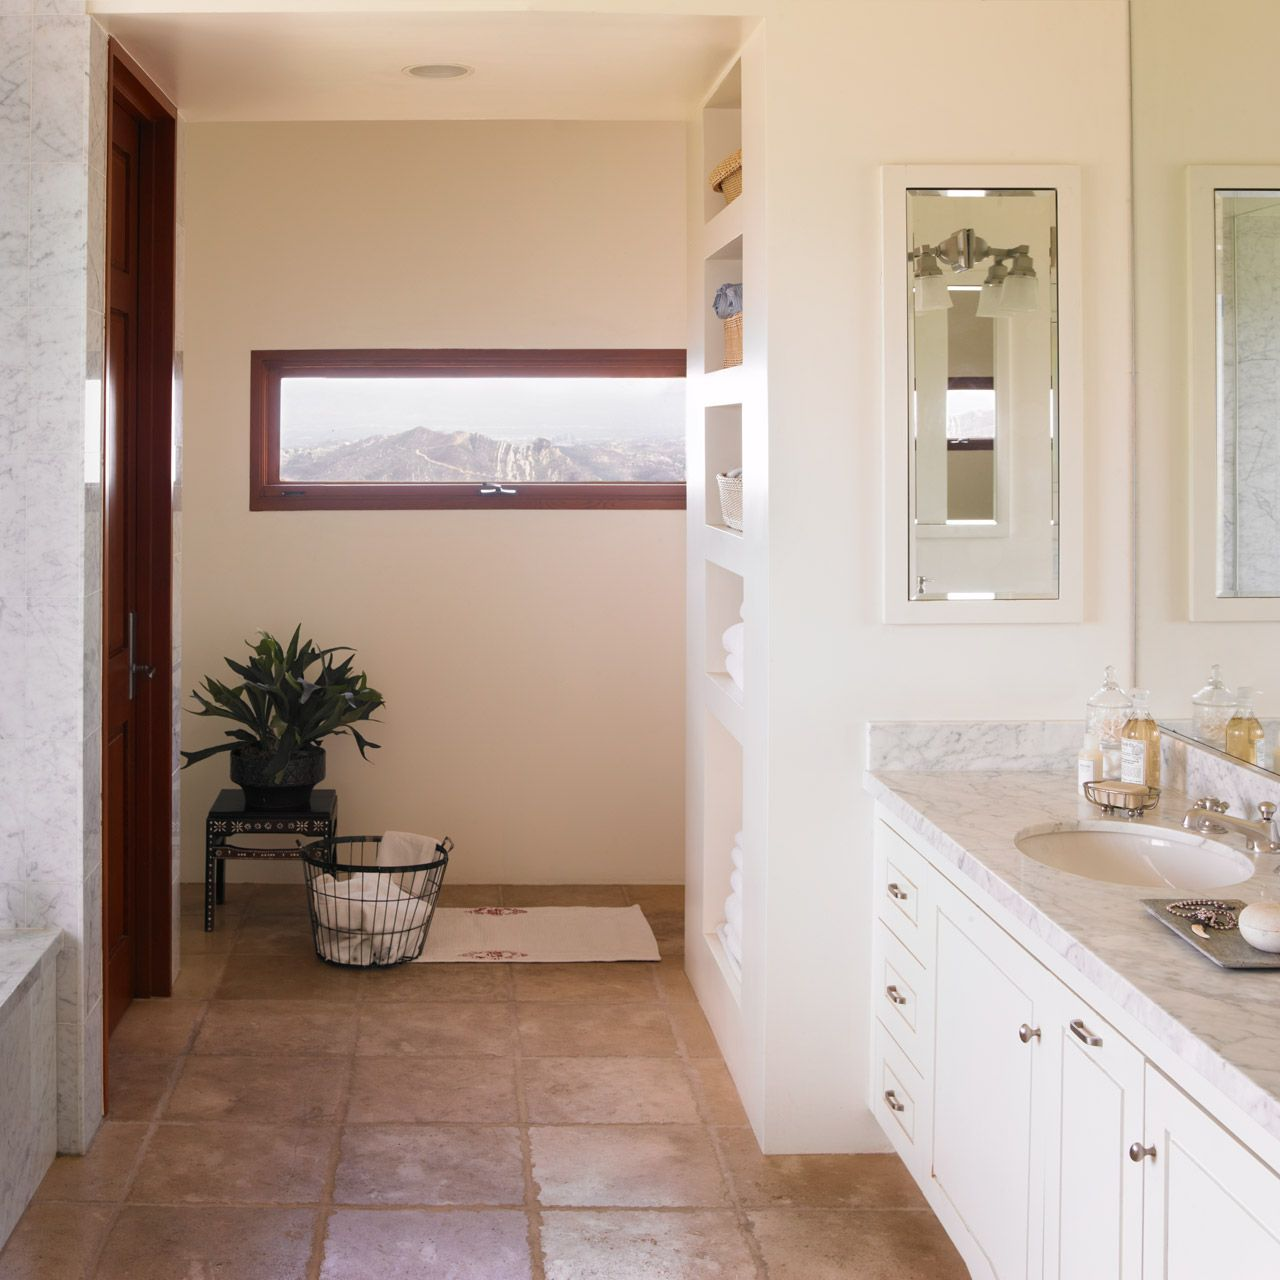 Dunn edwards paints paint colors walls silver setting for Dunn edwards interior paint